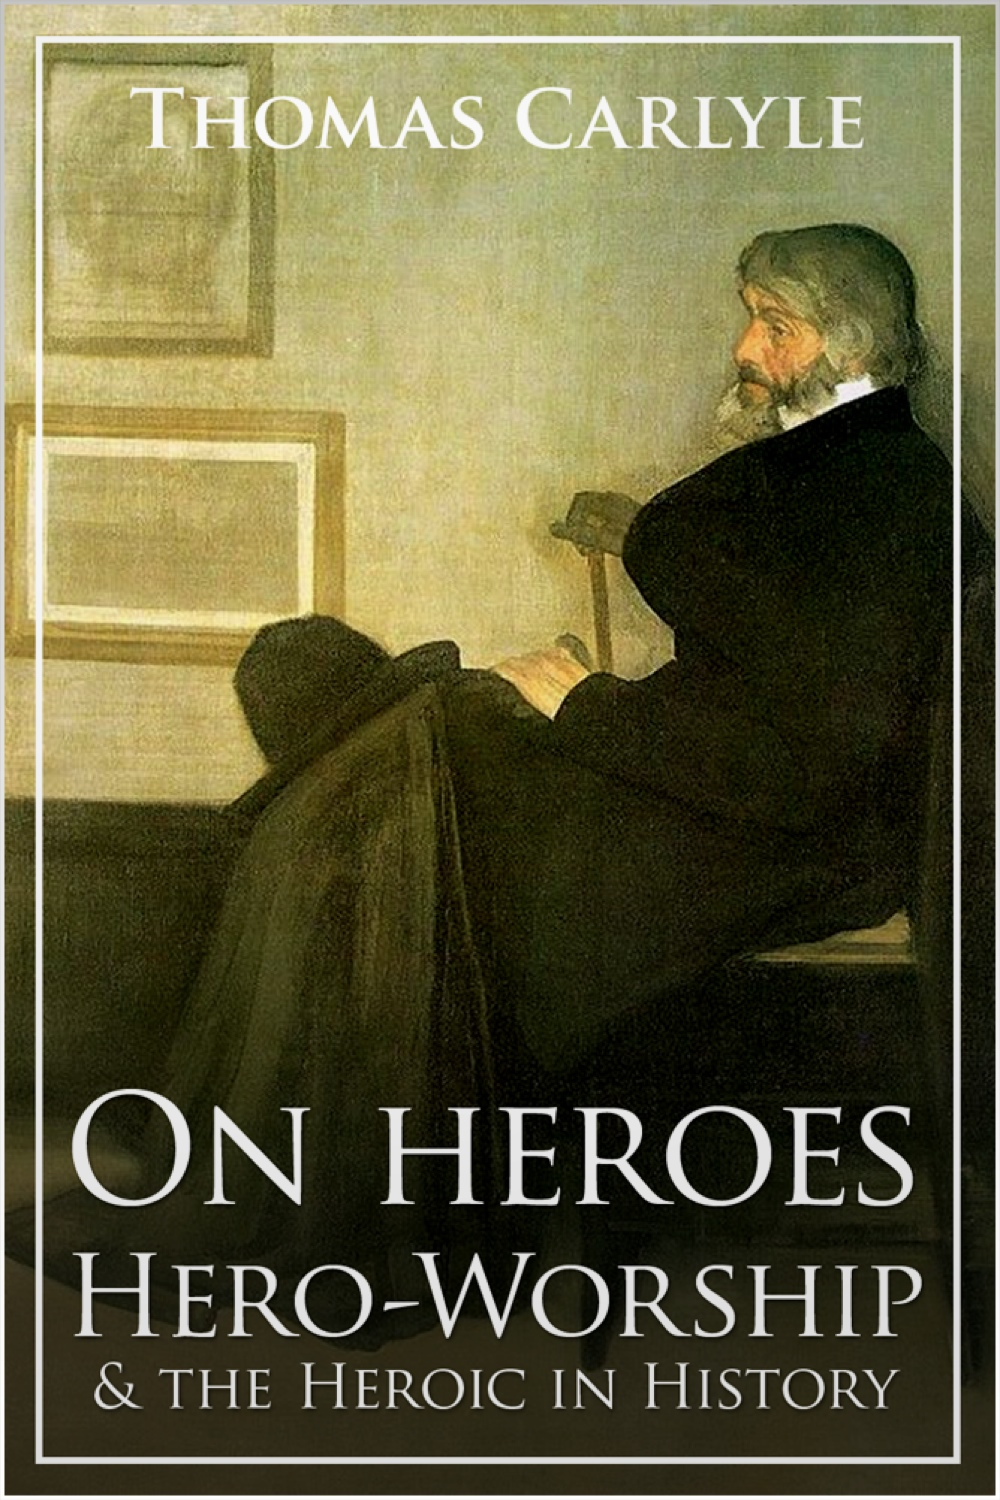 Cover Image: On Heroes, Hero-Worship and the Heroic in History